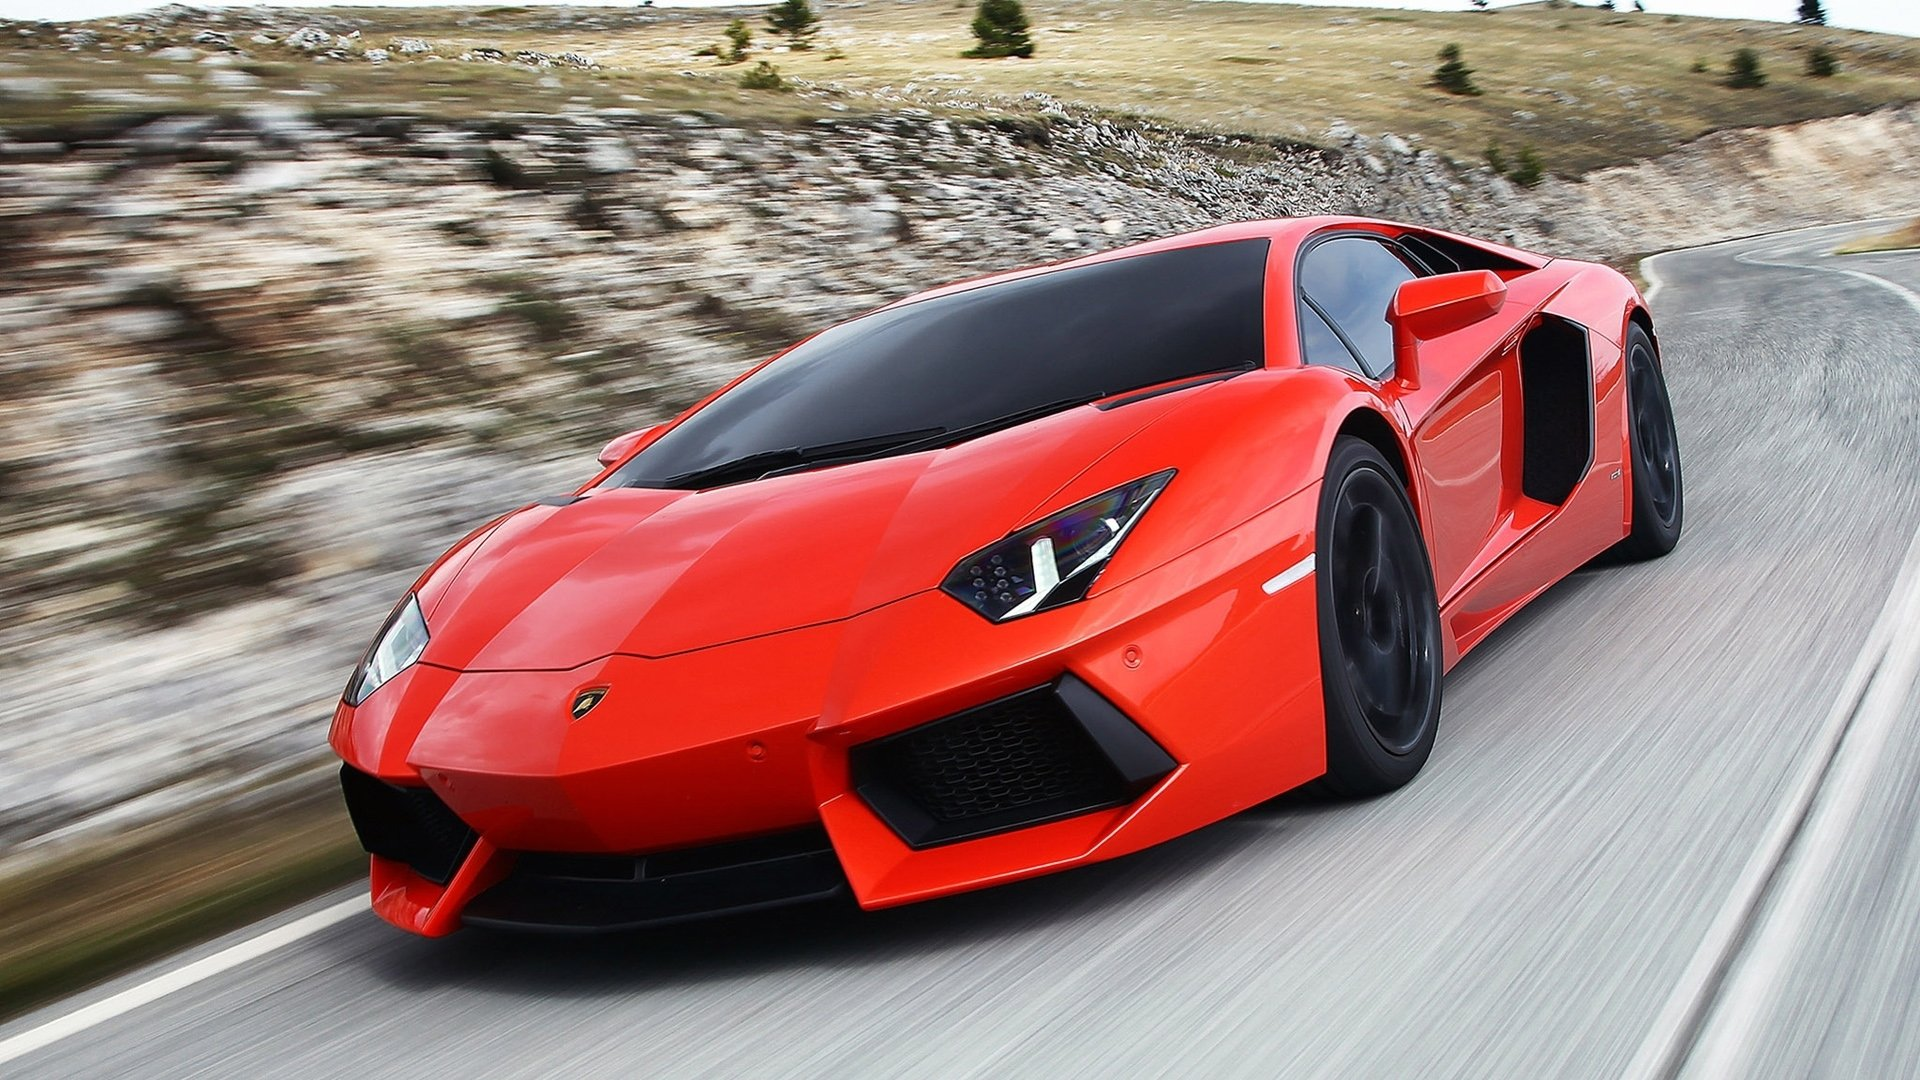 Lamborghini Wallpapers 1920x1080 Full Hd 1080p Desktop Backgrounds